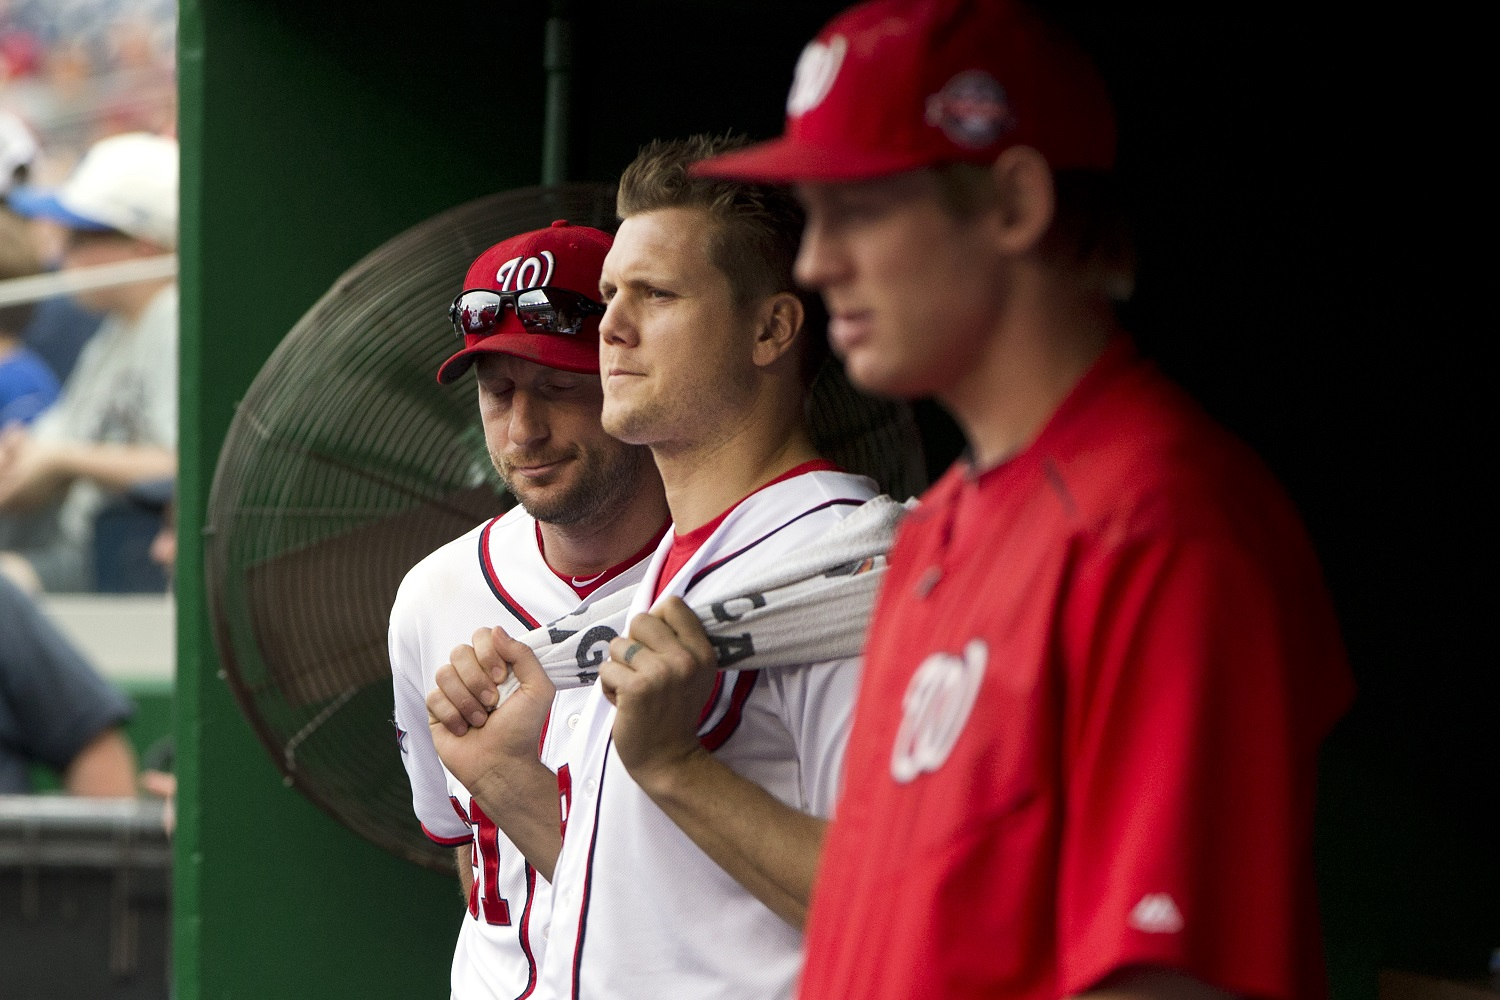 Nationals suspend Papelbon, effectively ending his season